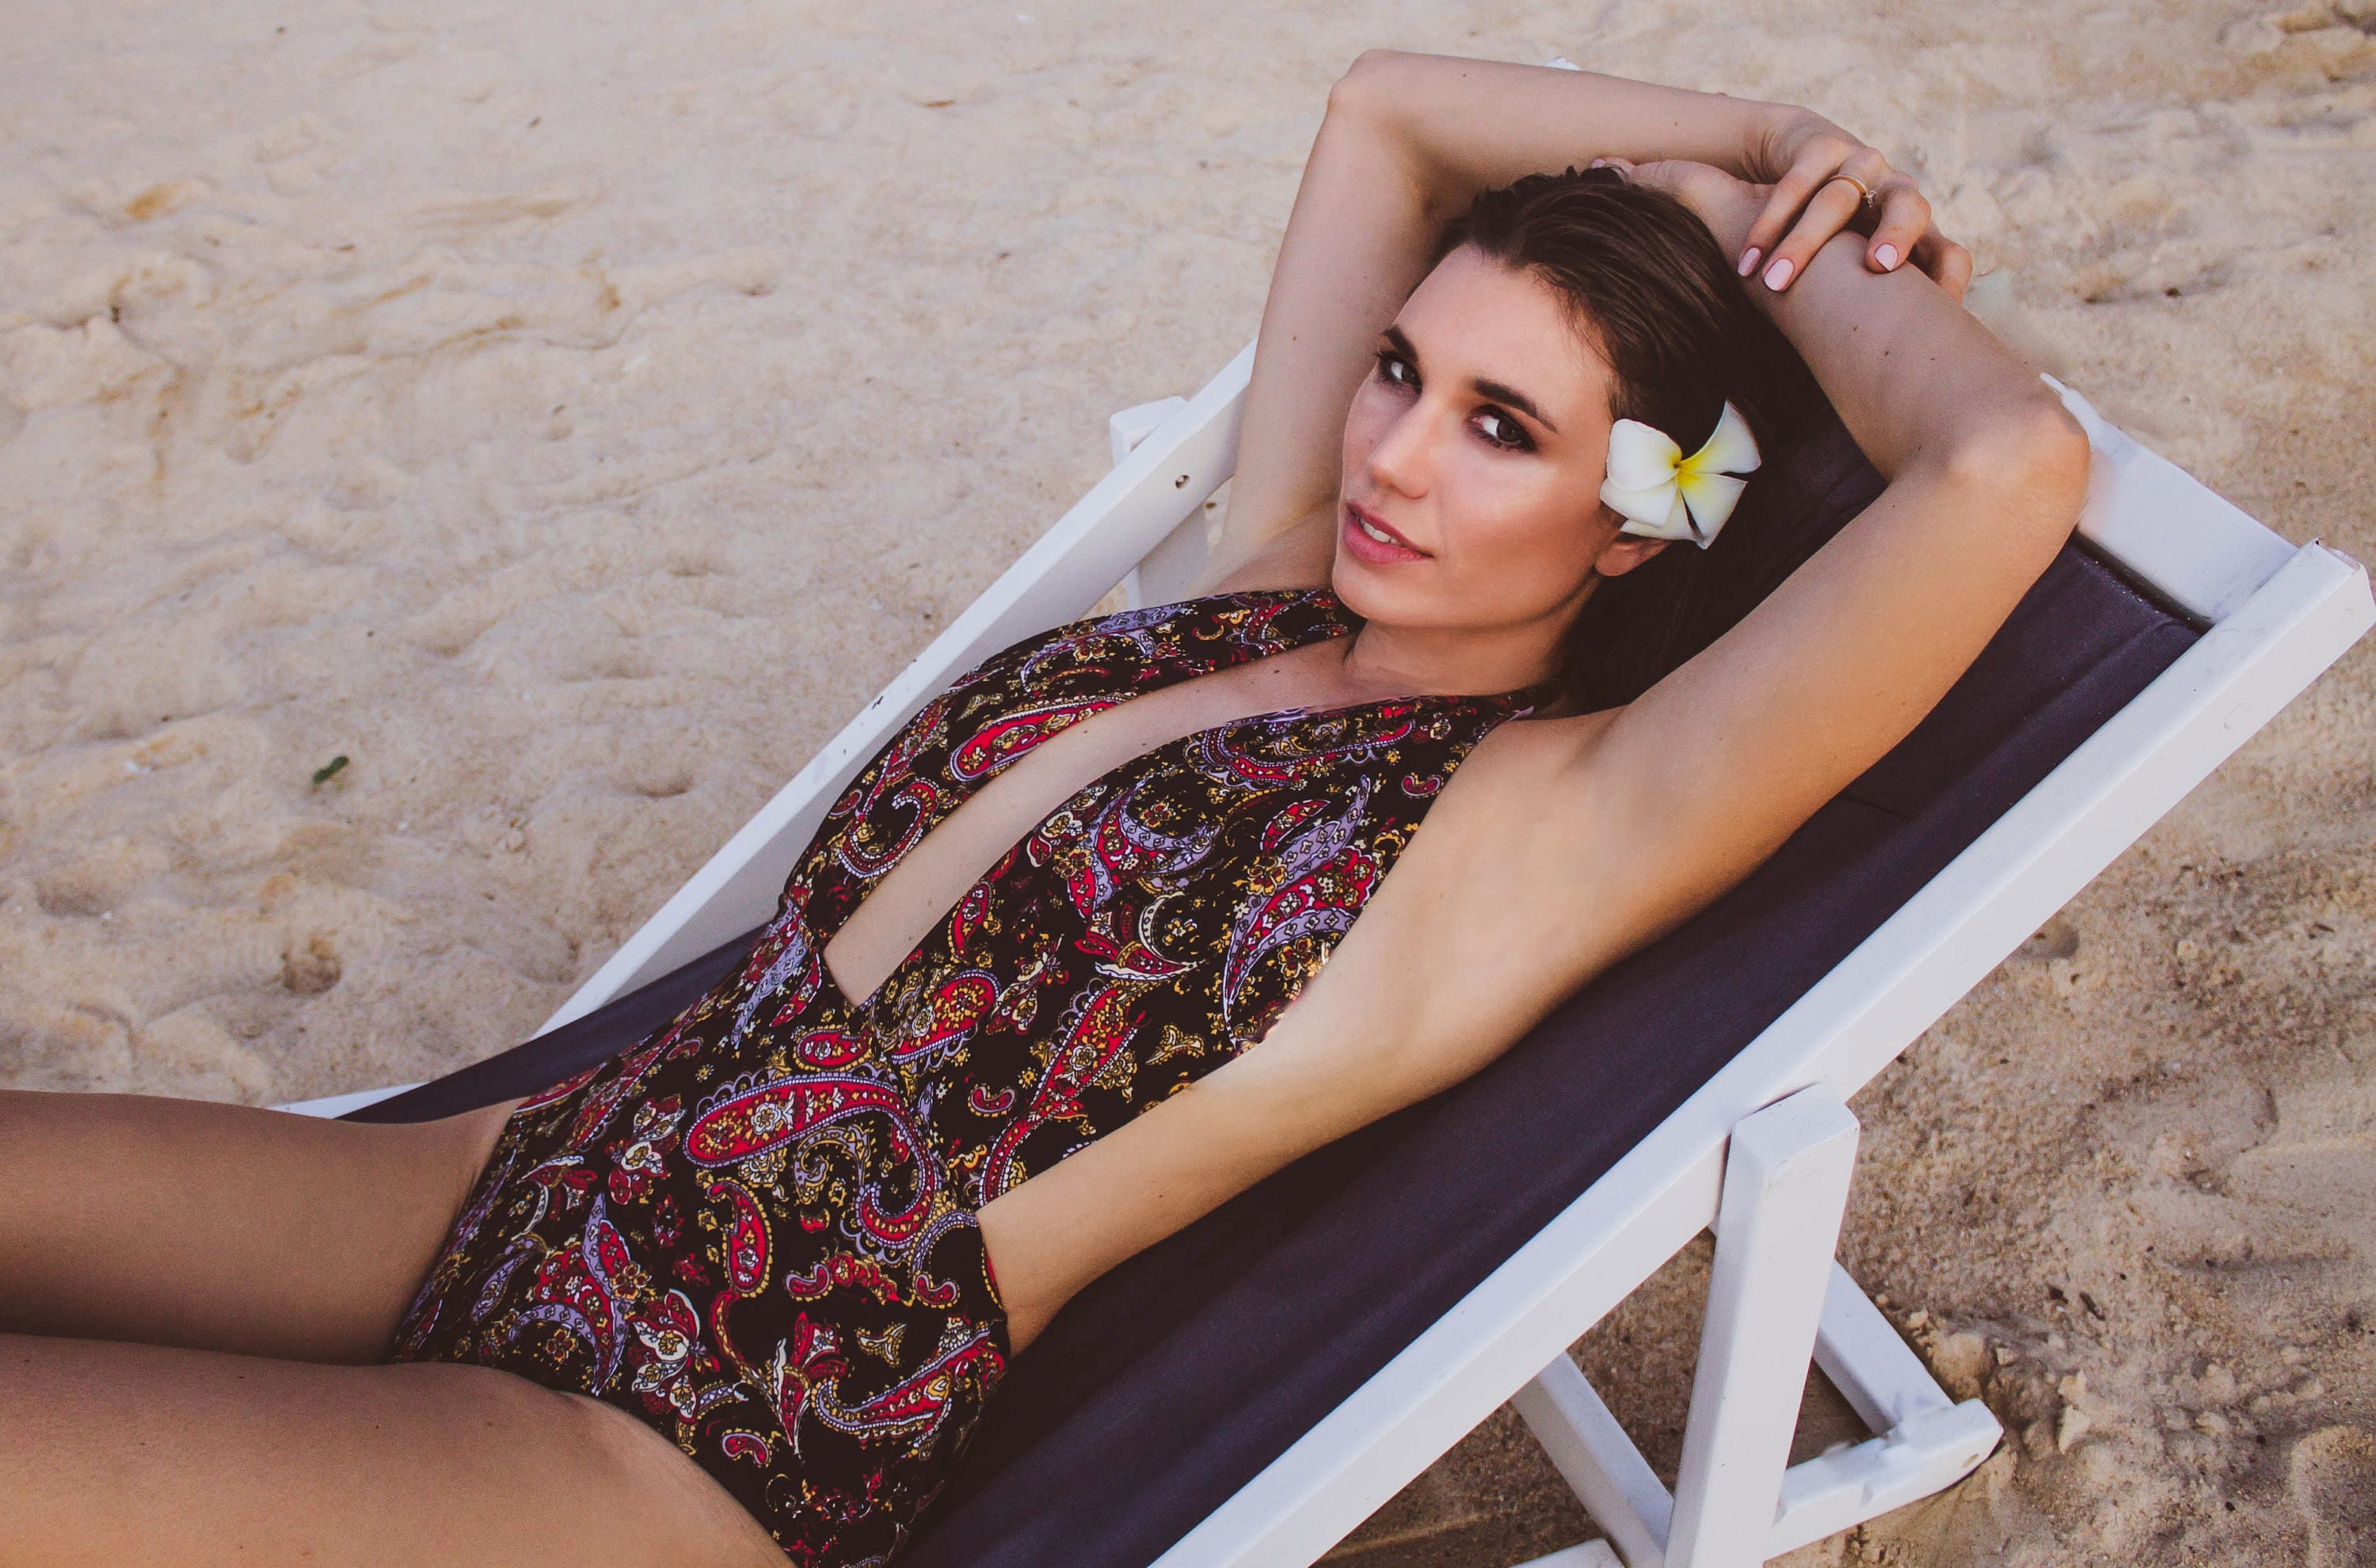 Swimsuit High Waisted Vintage Style One Piece Retro Pinup Maillot  Black and Red Paisley Floral Print Bathing Suit Swimwear  So Cute!